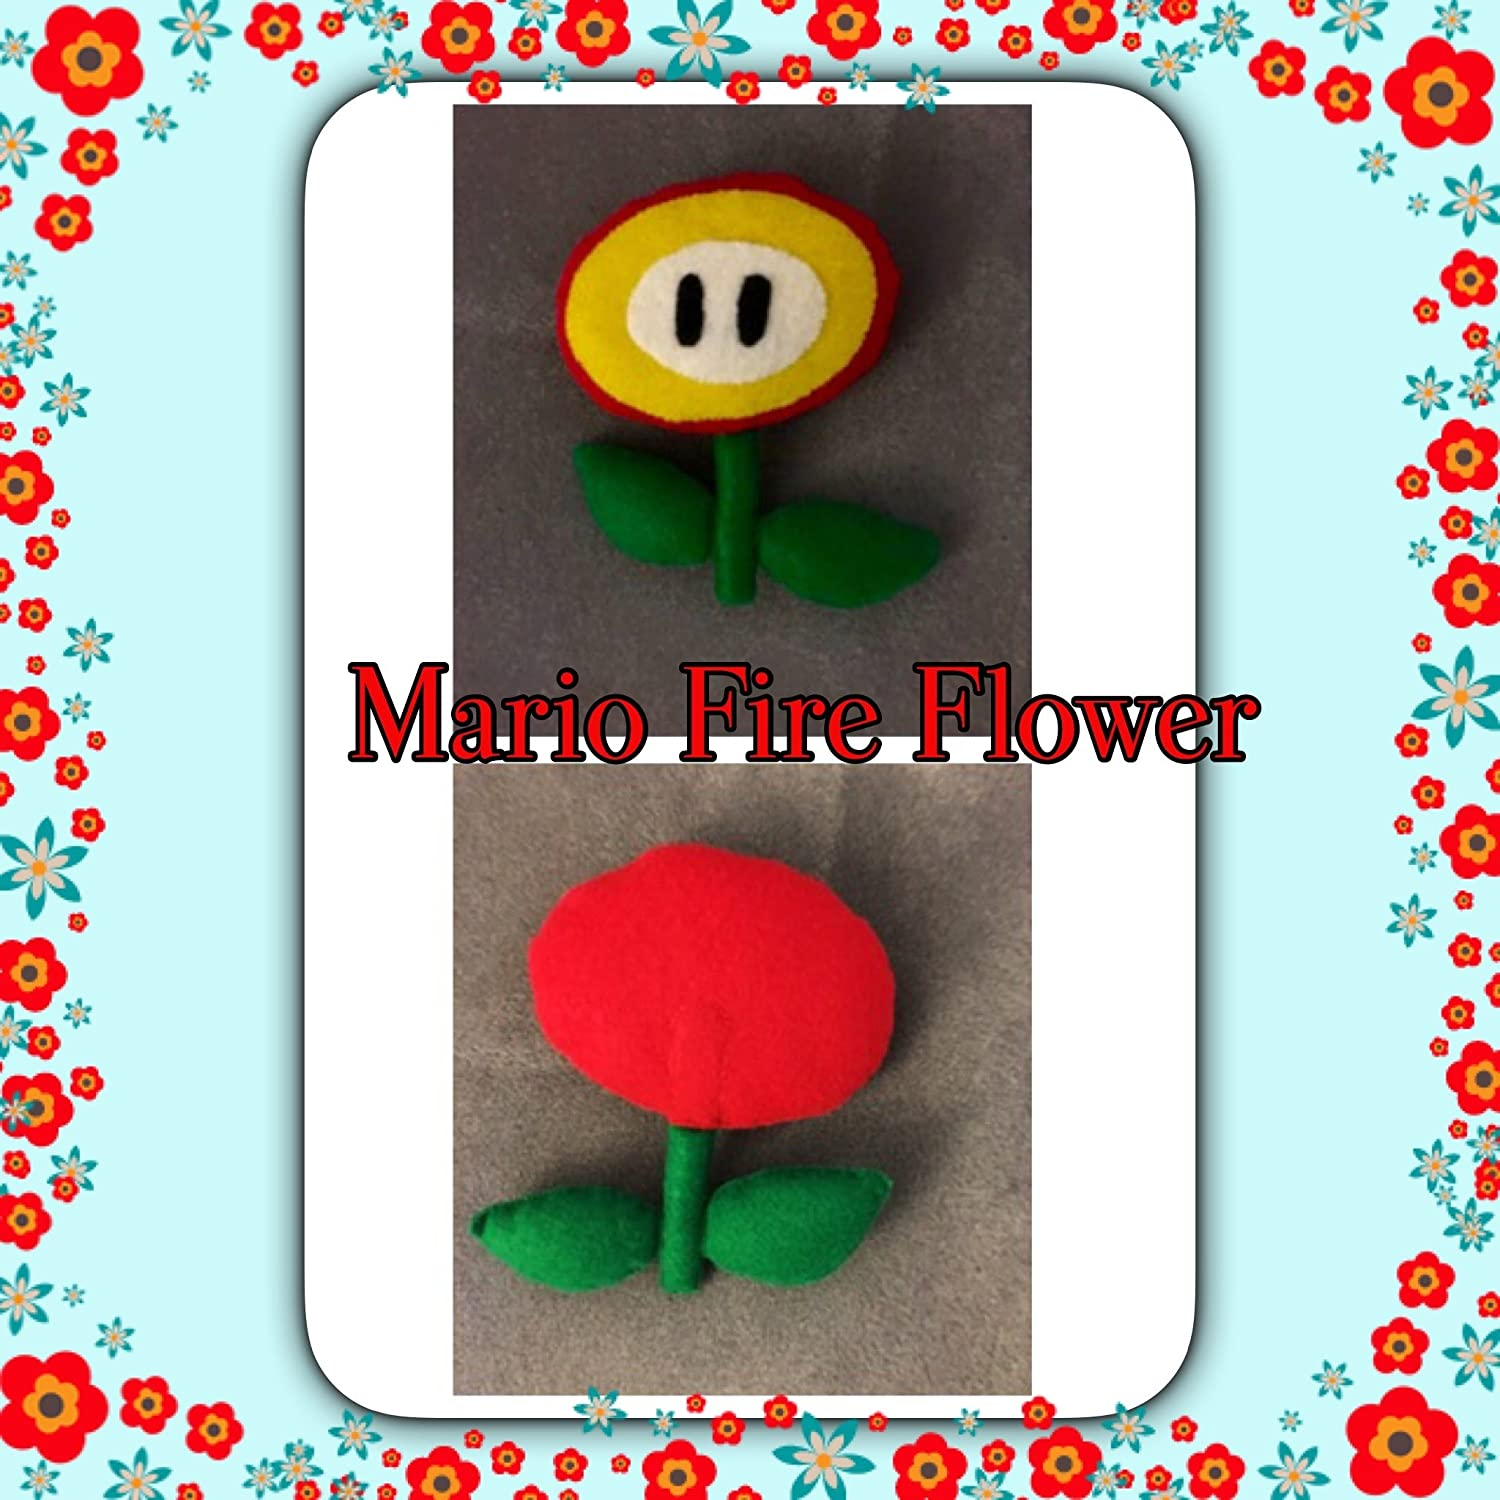 Fire Flower or Ice Flower Super Mario Bros Power Up Plush Doll ~Hand-sewn with love